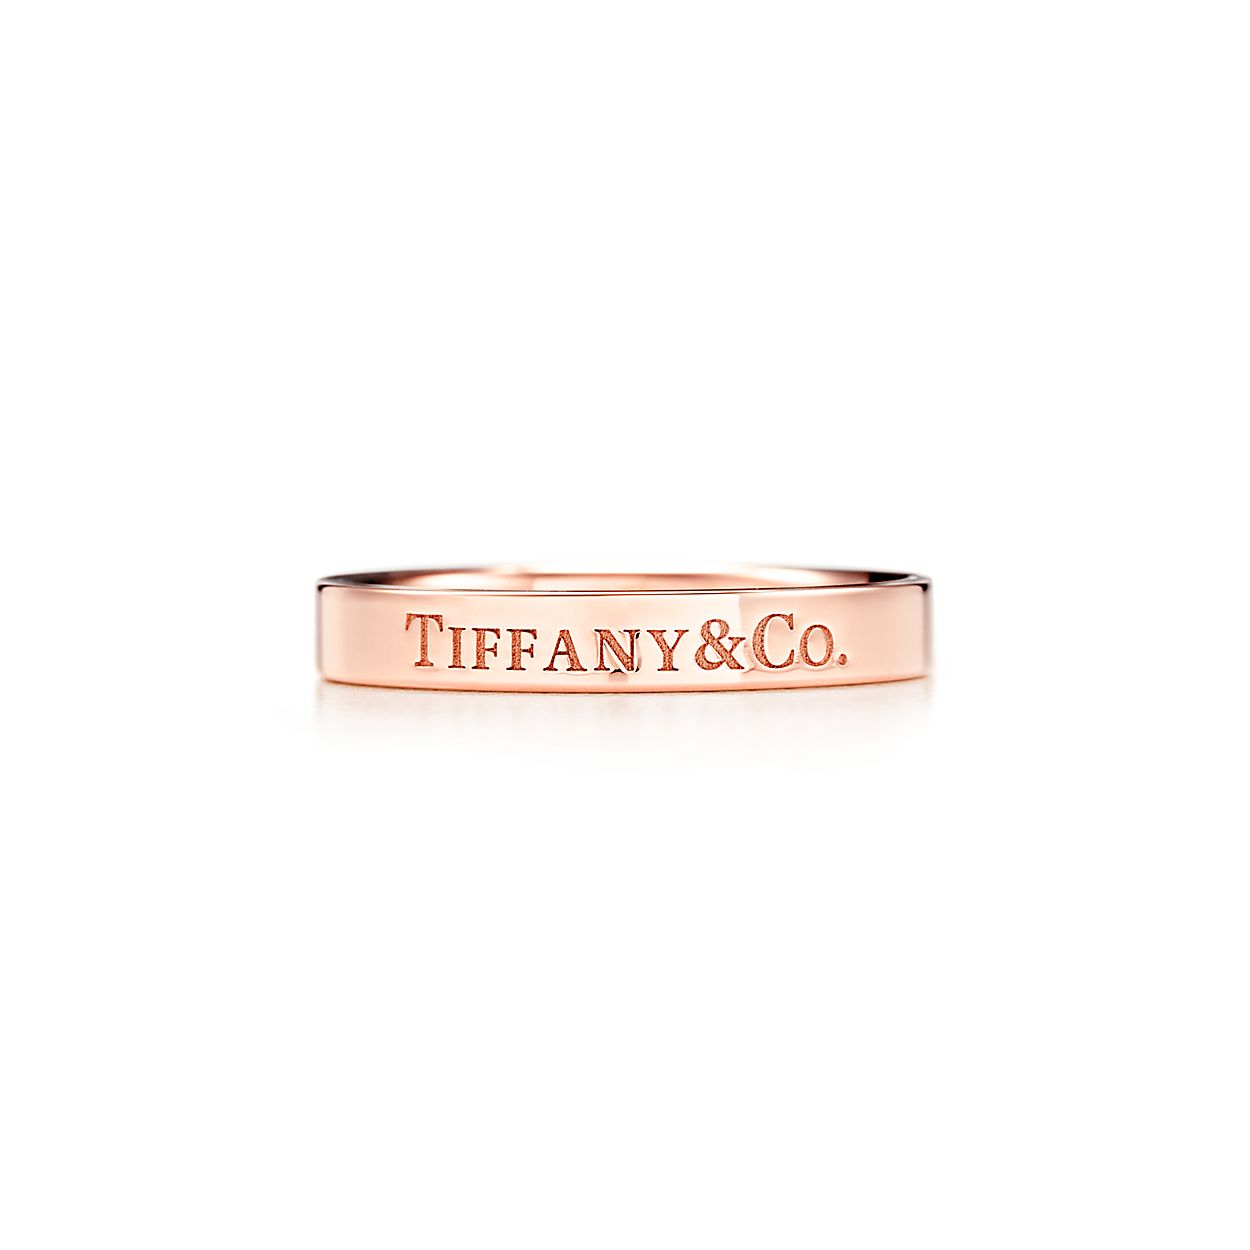 Tiffany Co Band Ring In 18k Rose Gold 3 Mm Wide Tiffany Co